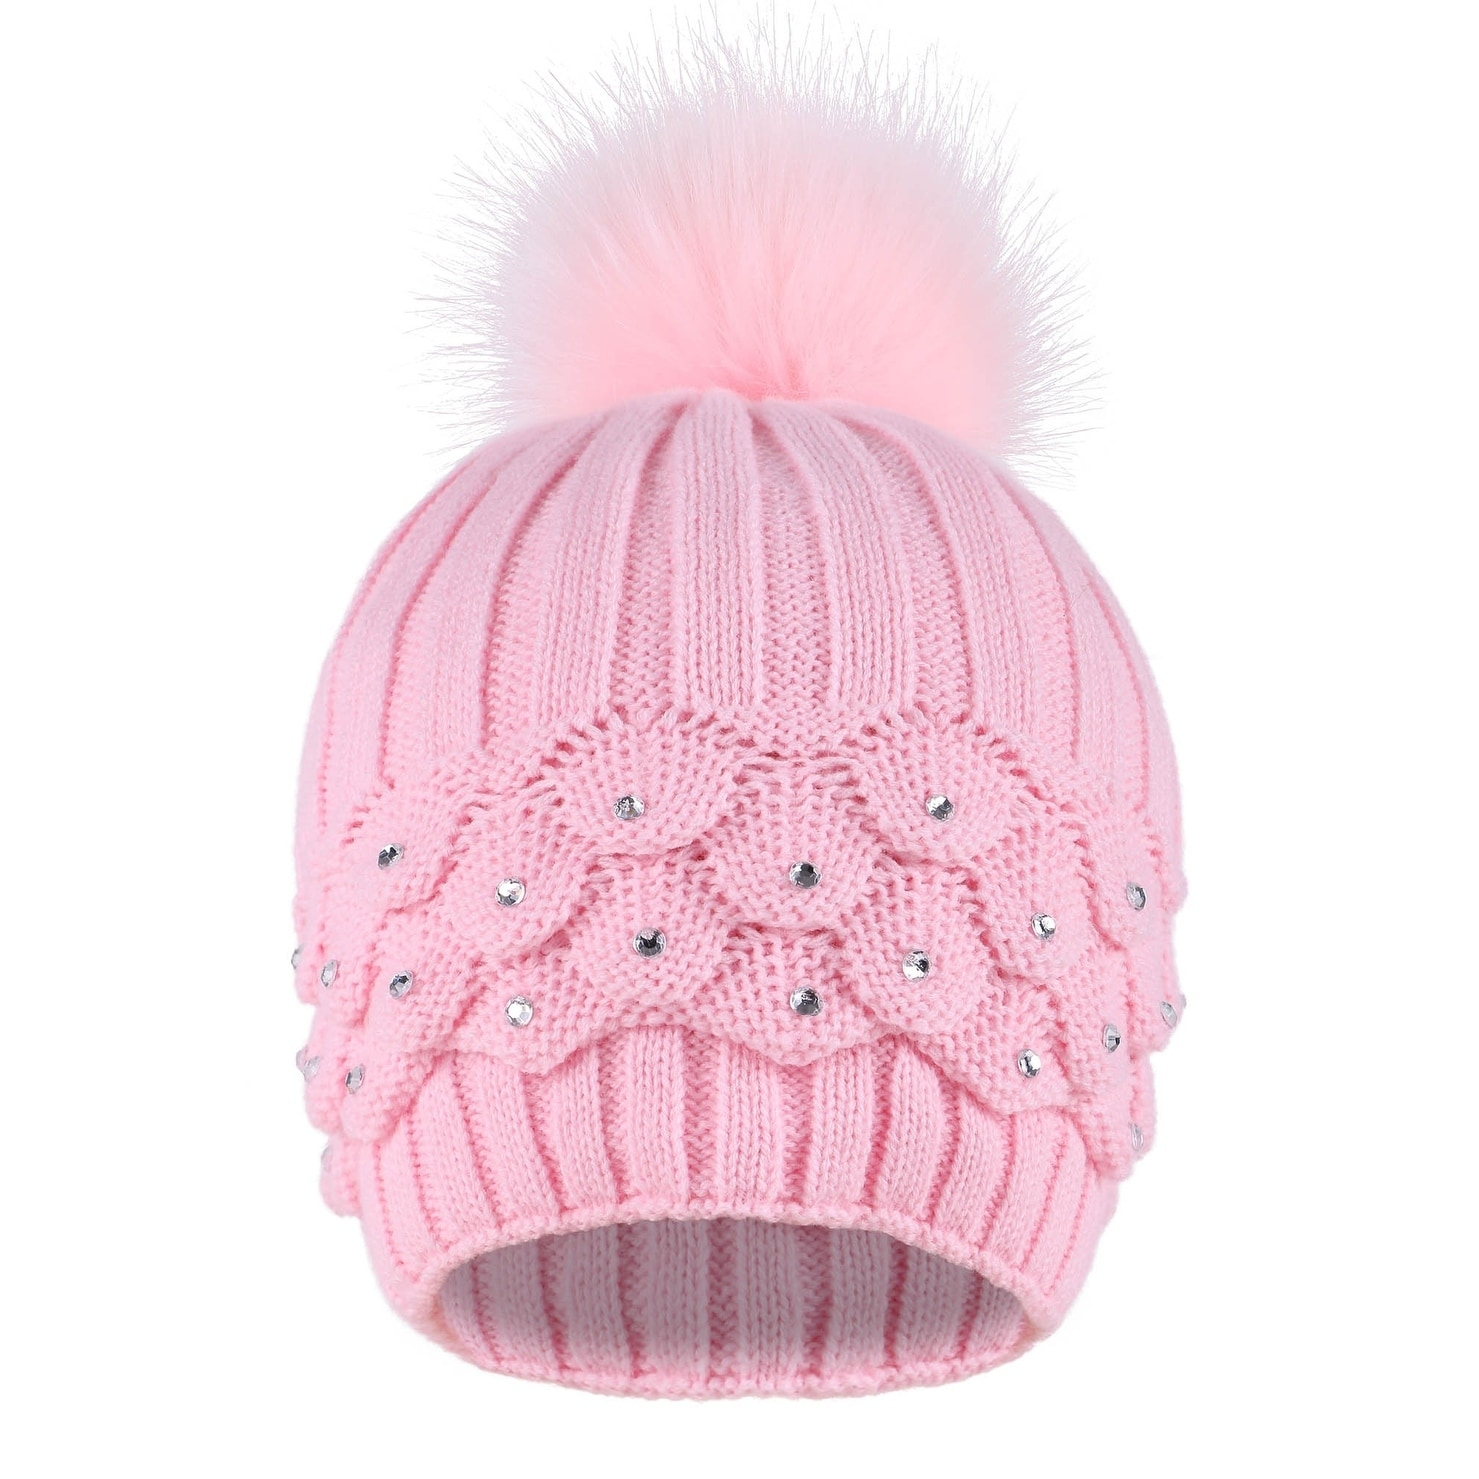 50692bba054e35 Shop Faux Fur Winter Cable Knit Pom Pom Beanie for Women w/ Sequins - On  Sale - Free Shipping On Orders Over $45 - Overstock - 24072255